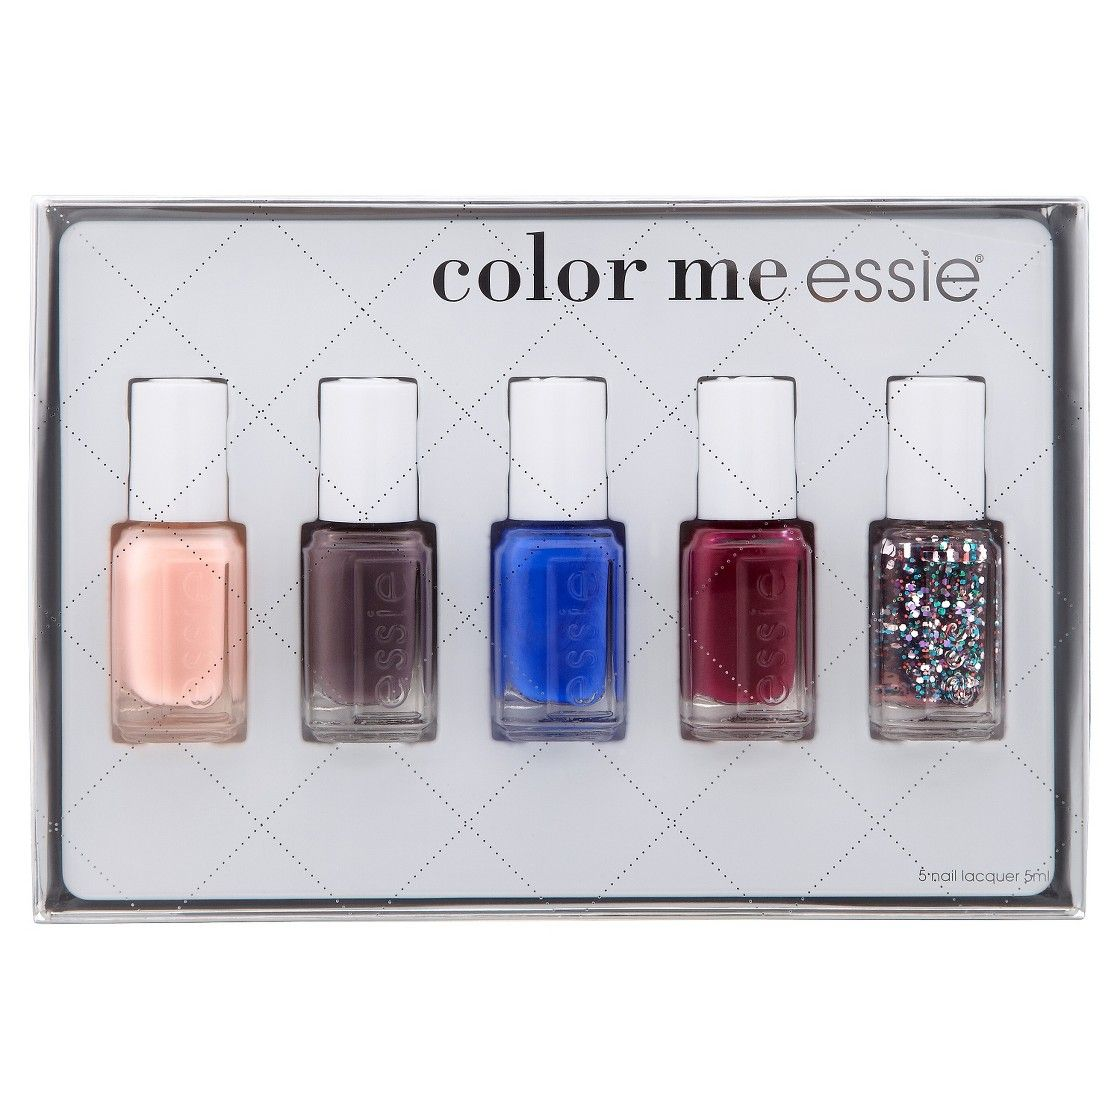 Essie Holiday Mini Nail Color Kit - have!   Mani   Pinterest   Color ...